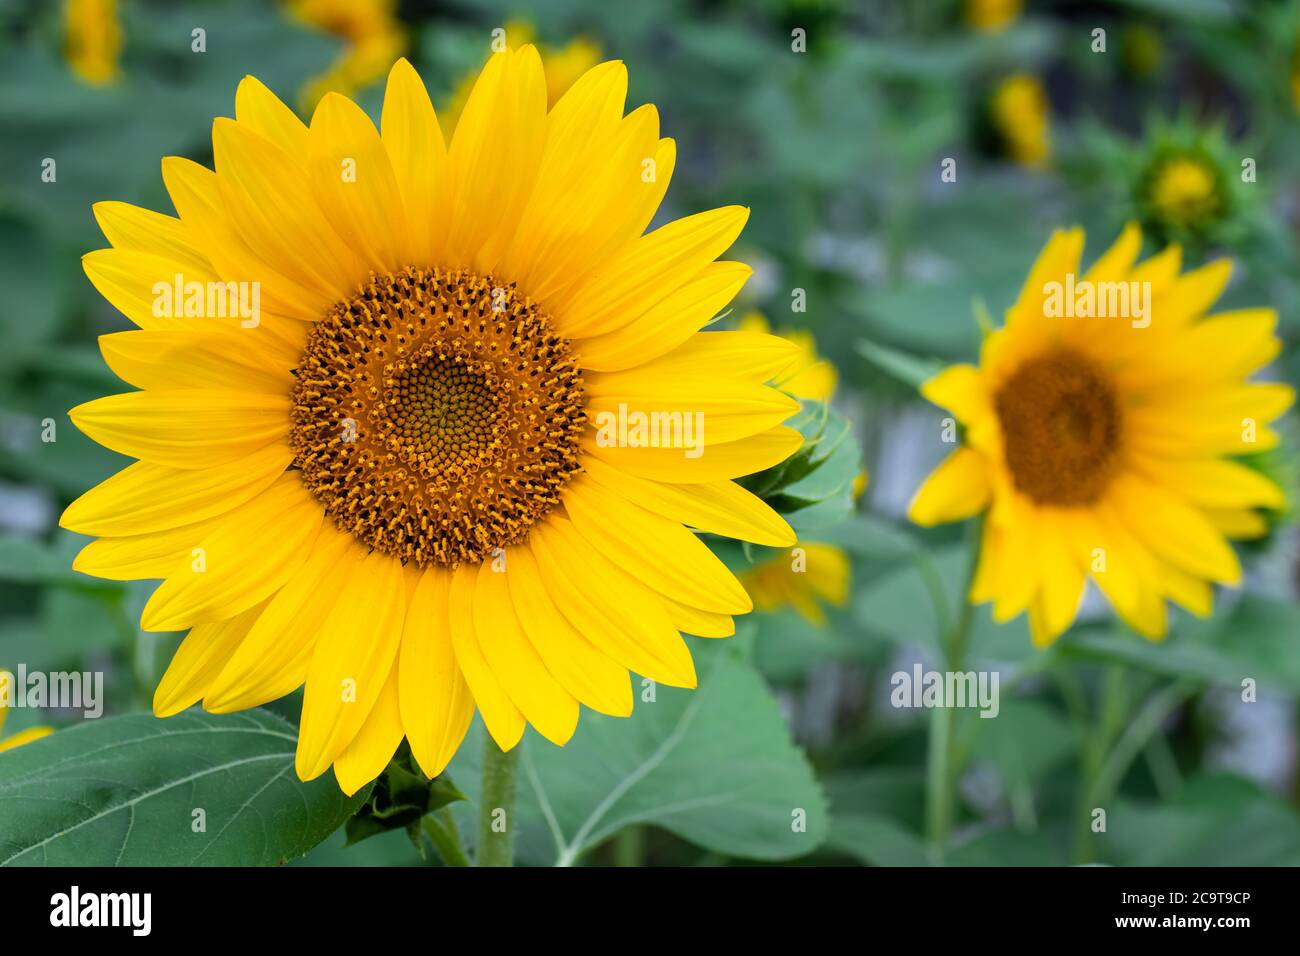 Sunflower Wallpaper High Resolution Stock Photography And Images Alamy